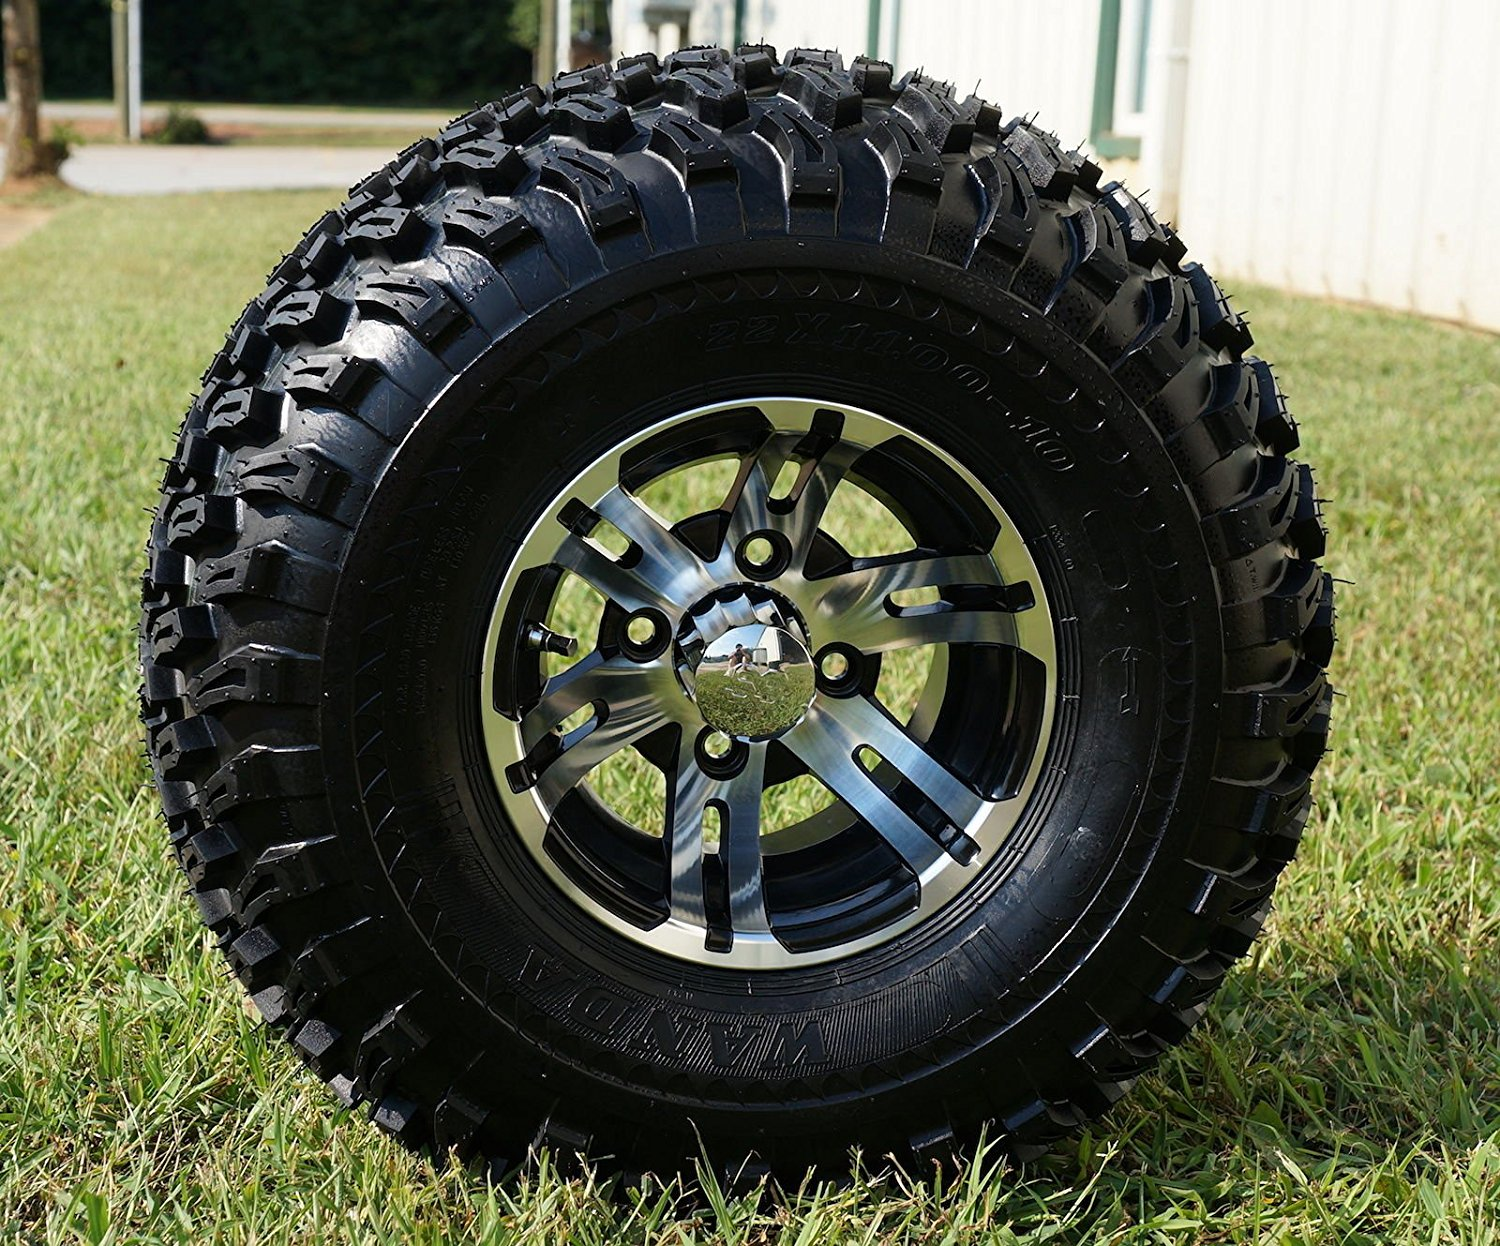 23 inch golf cart tires and wheels, 14 inch golf cart tires and wheels, 12 inch golf cart tires and wheels, on 8 inch golf cart tires and wheels